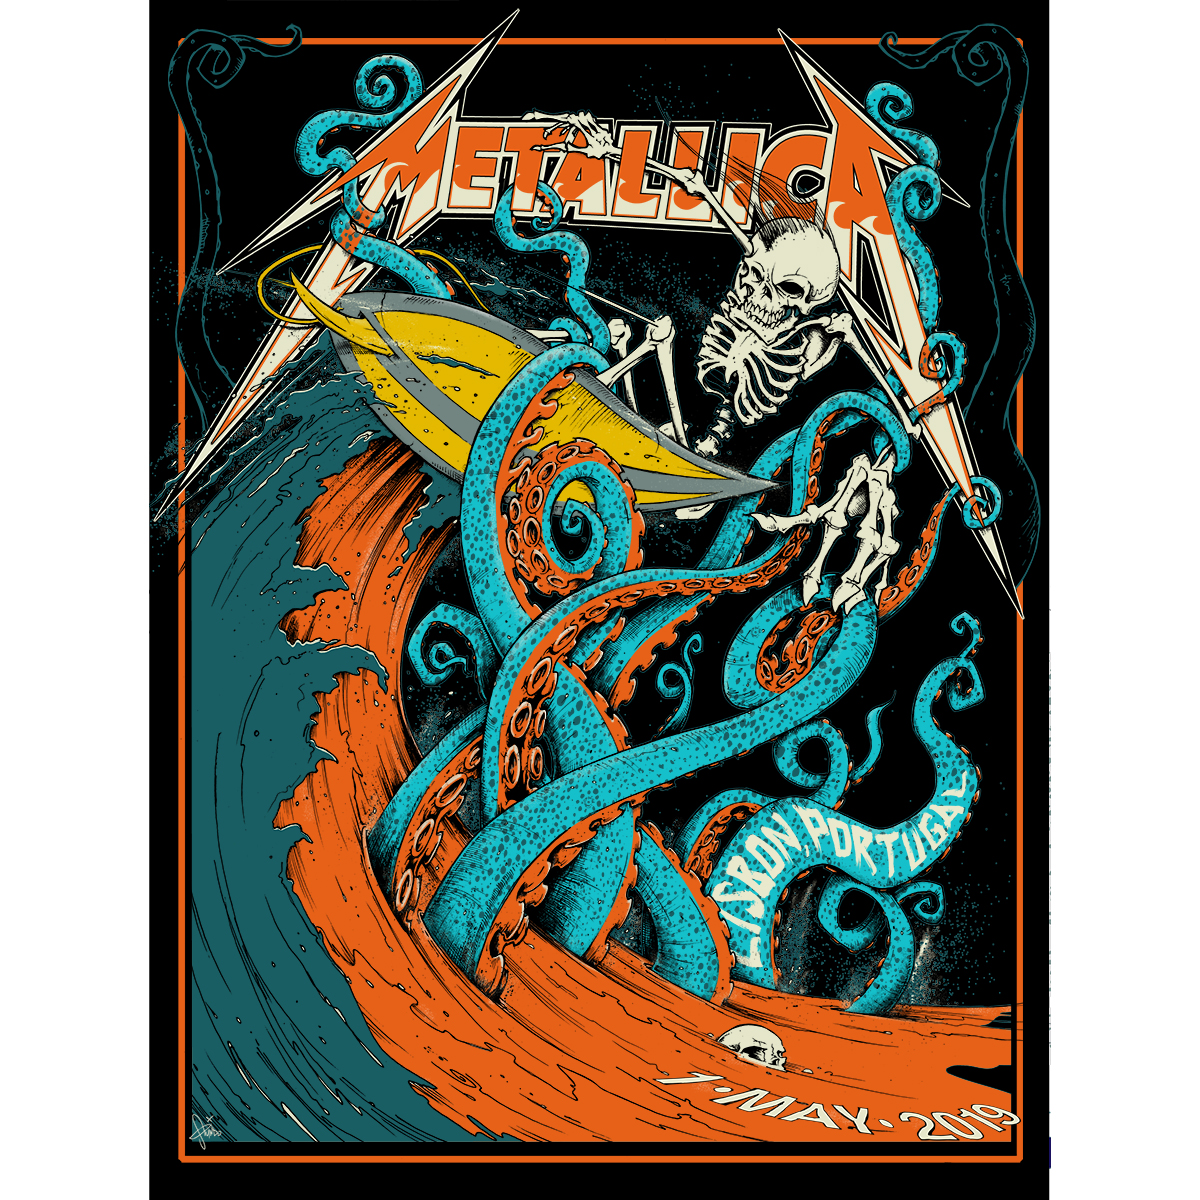 Lisbon May 1st – Limited Edition Numbered Screen Printed Event Poster - Metallica